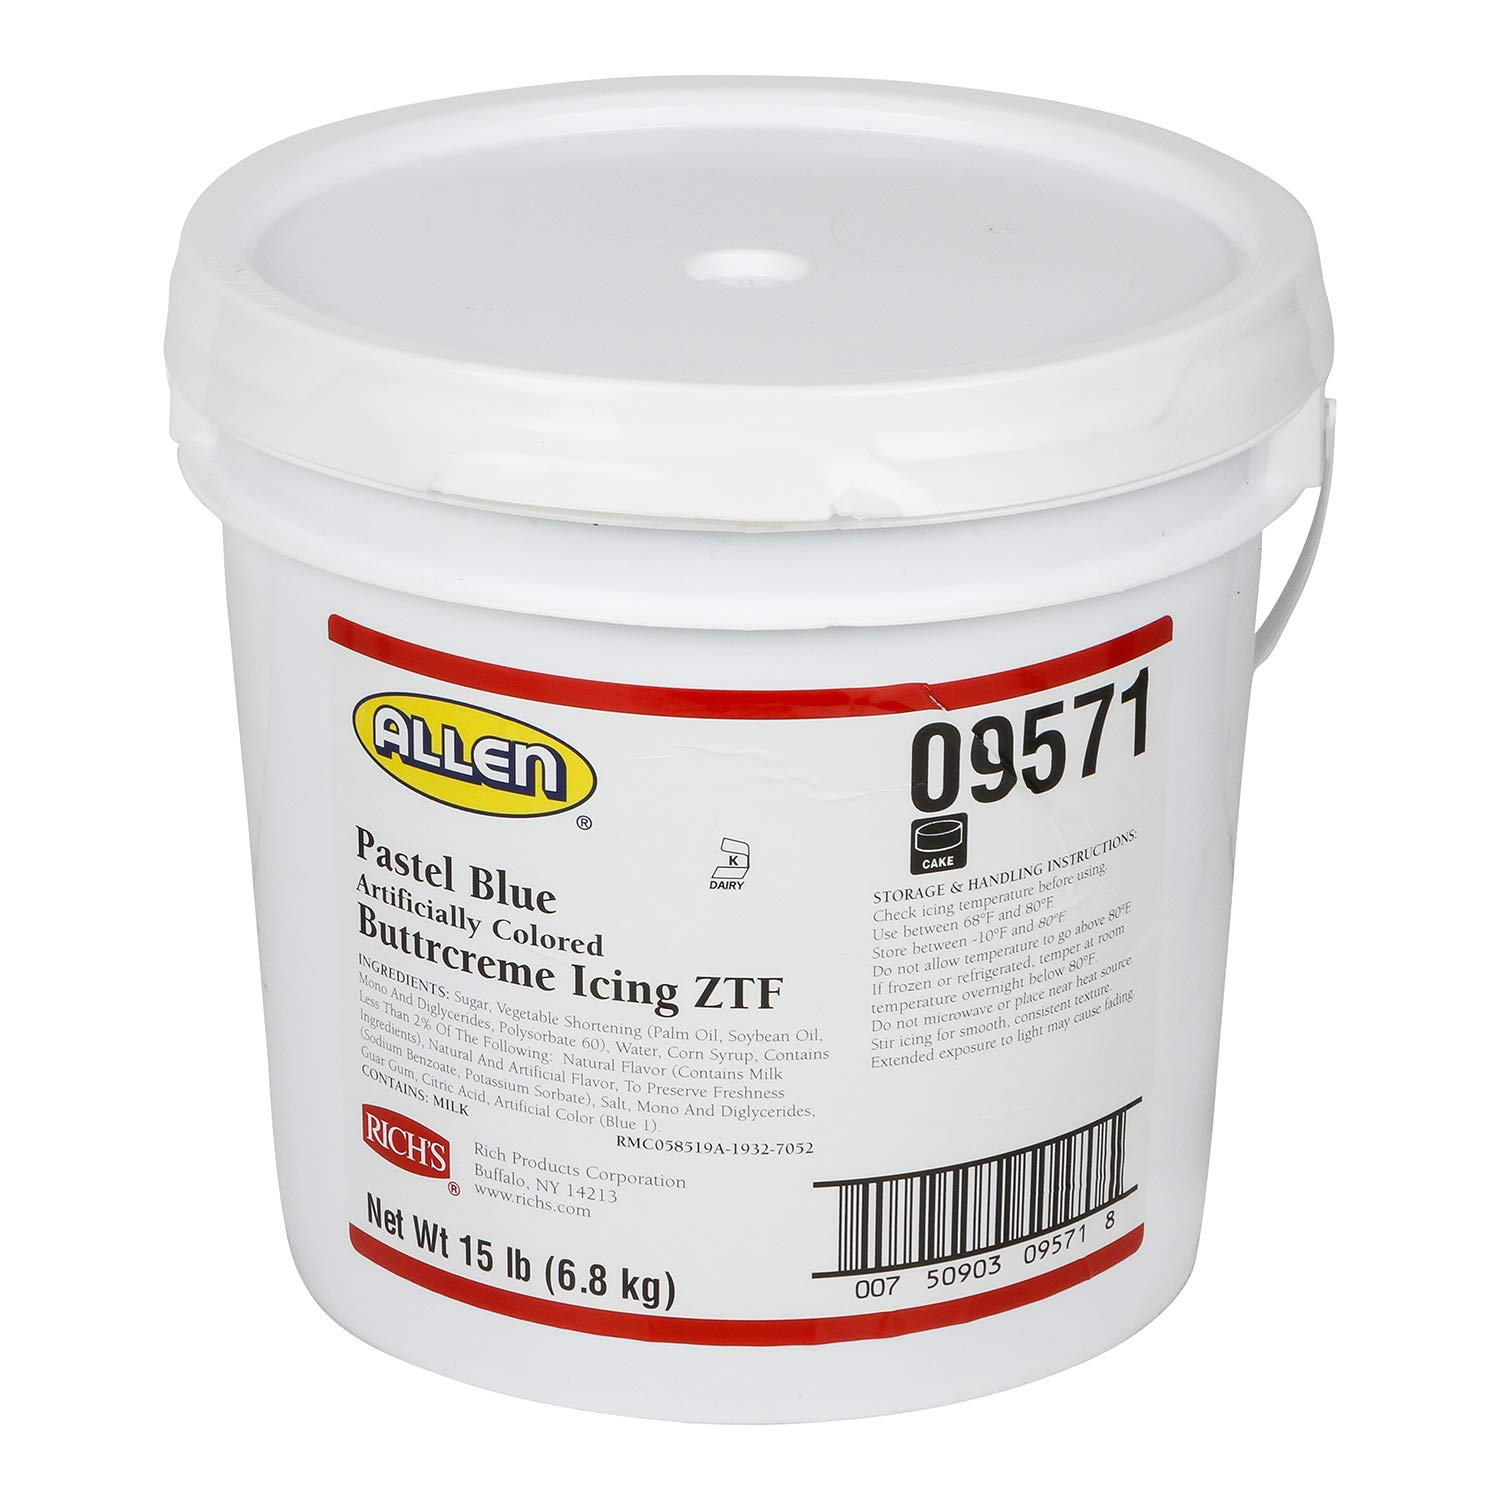 Rich's JW Allen Pre-Whipped Buttrcreme Icing ZTF, Pastel Blue, 15 lb